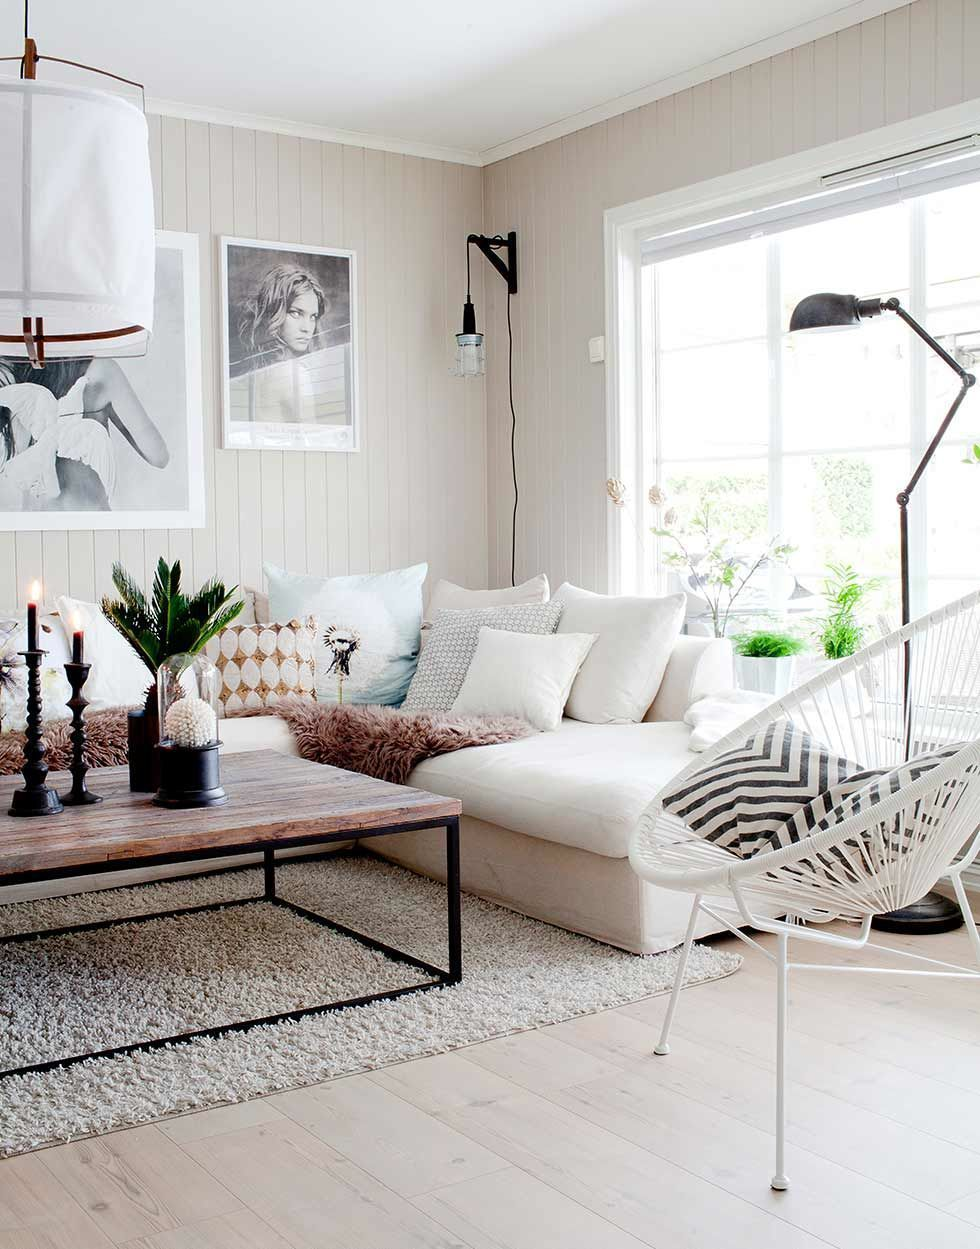 Cozy Small Living Room Design Ideas And Decorating Ideas With Tv Fireplace On A Budget Moder Living Room Stands Small Living Room Design Living Room Designs